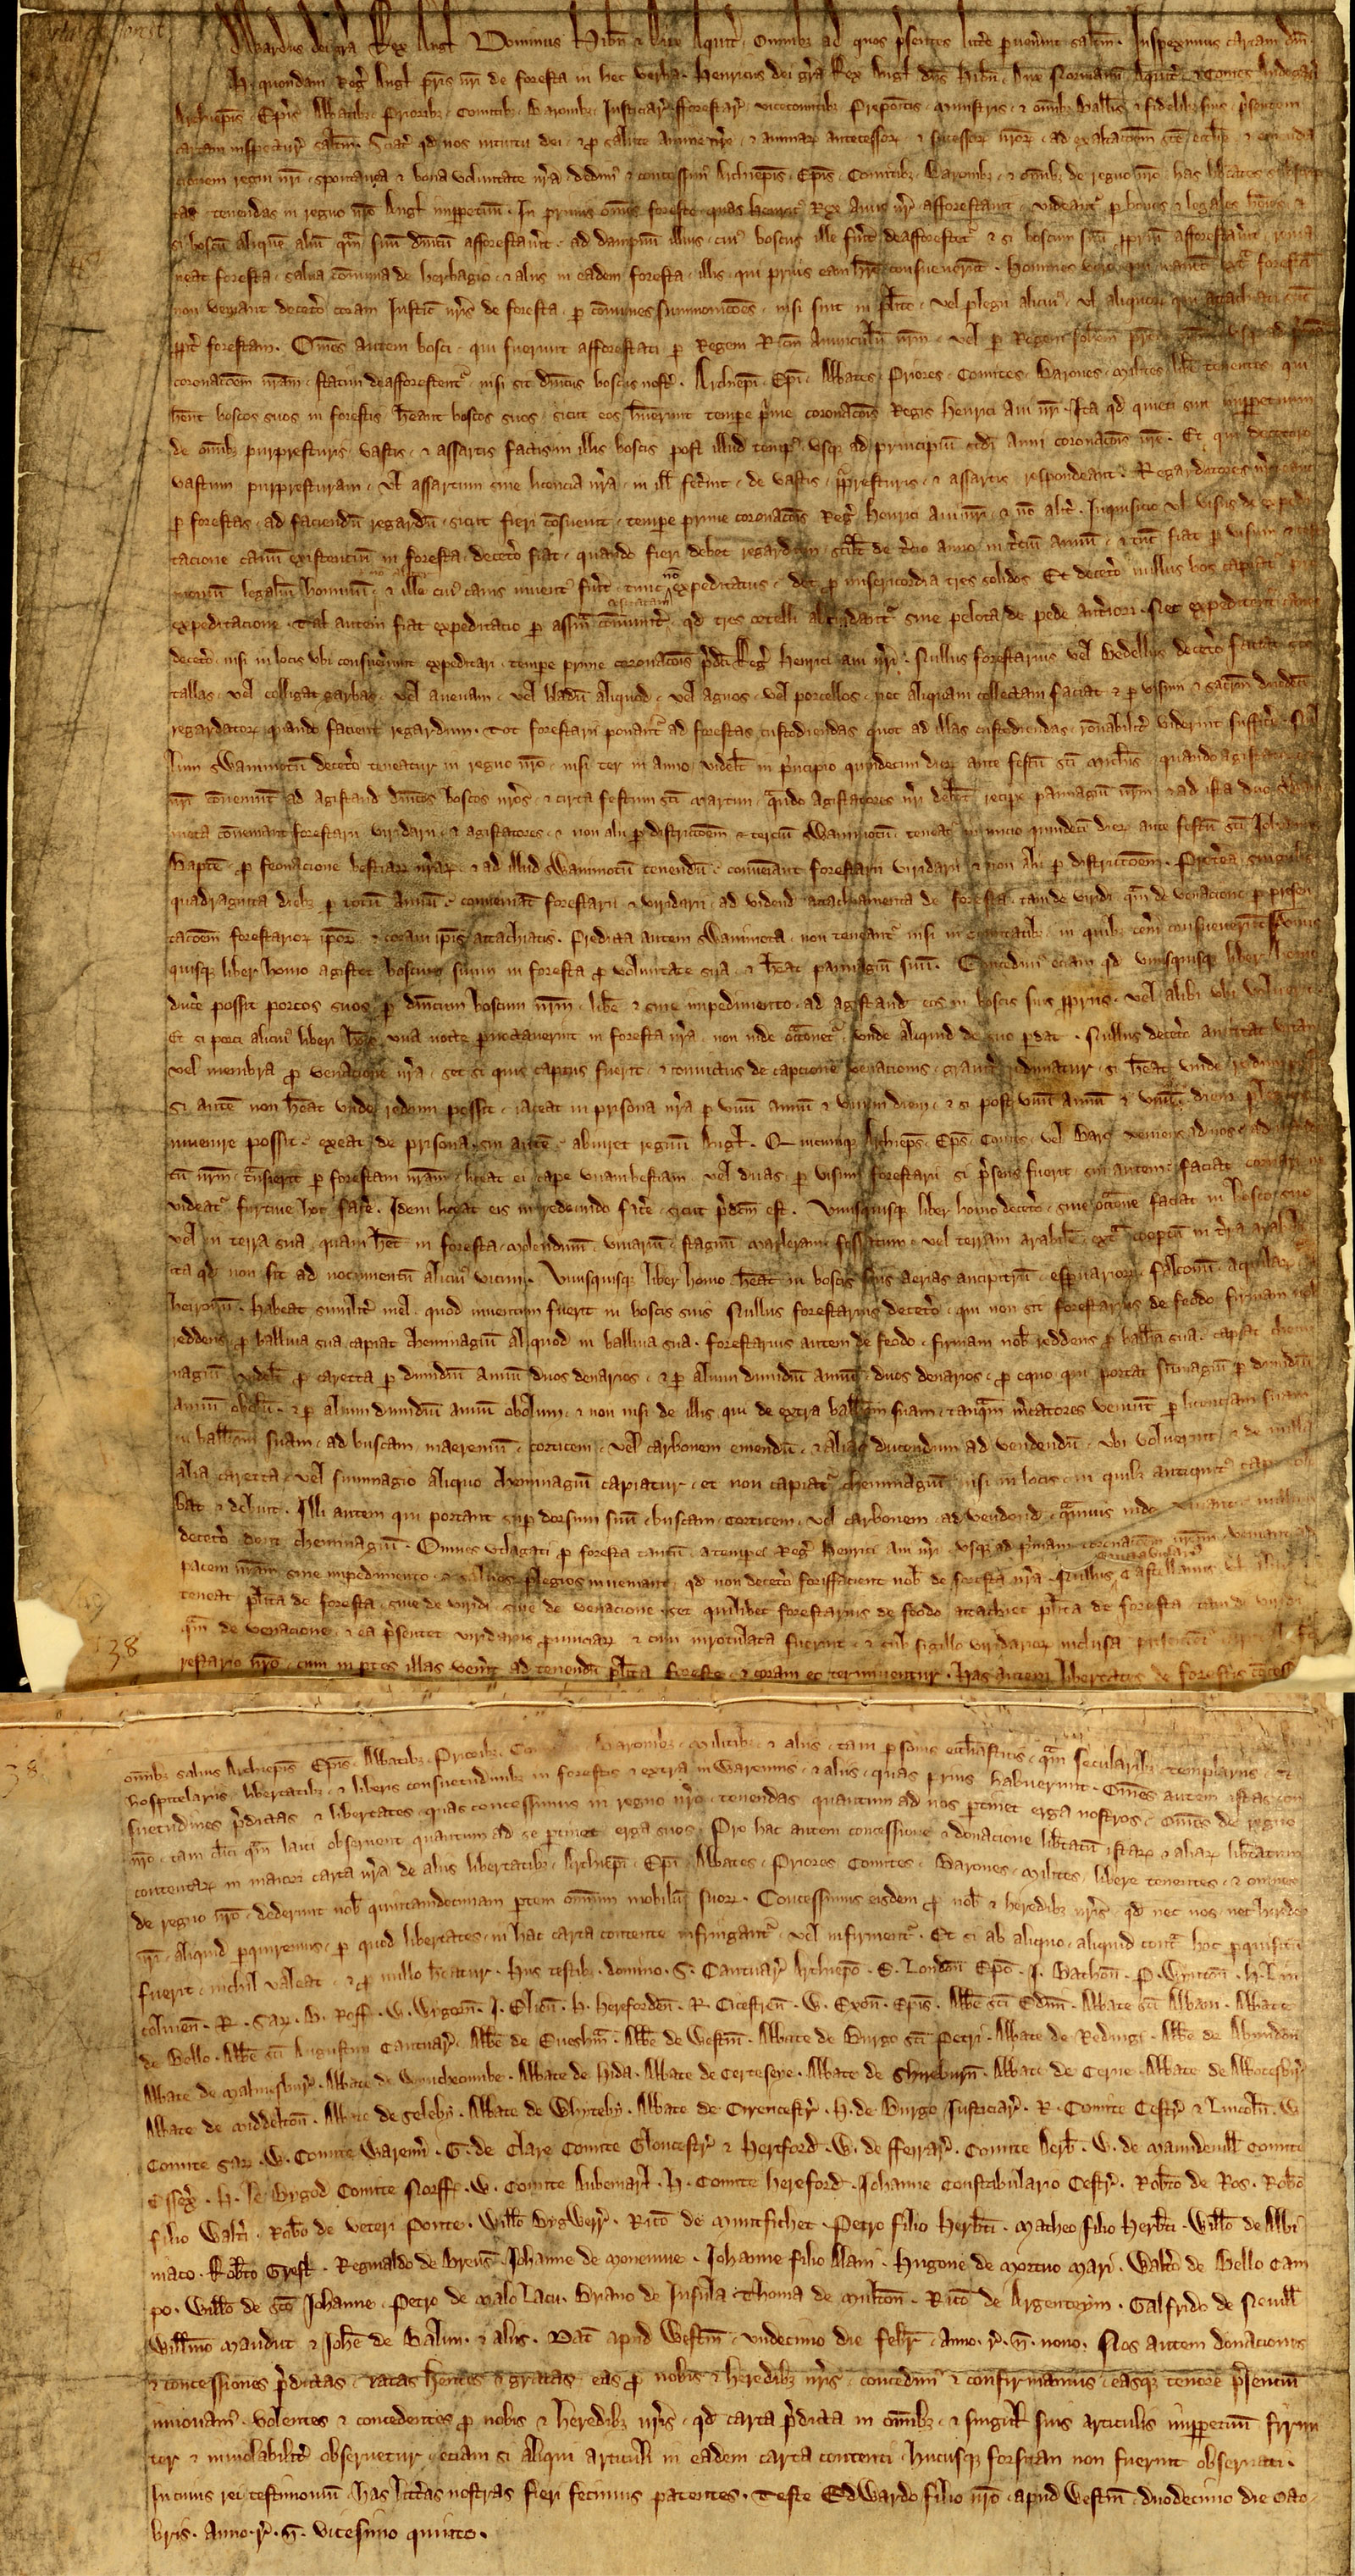 Charter of the Forest, Westminster, 1225 (C 74/1)